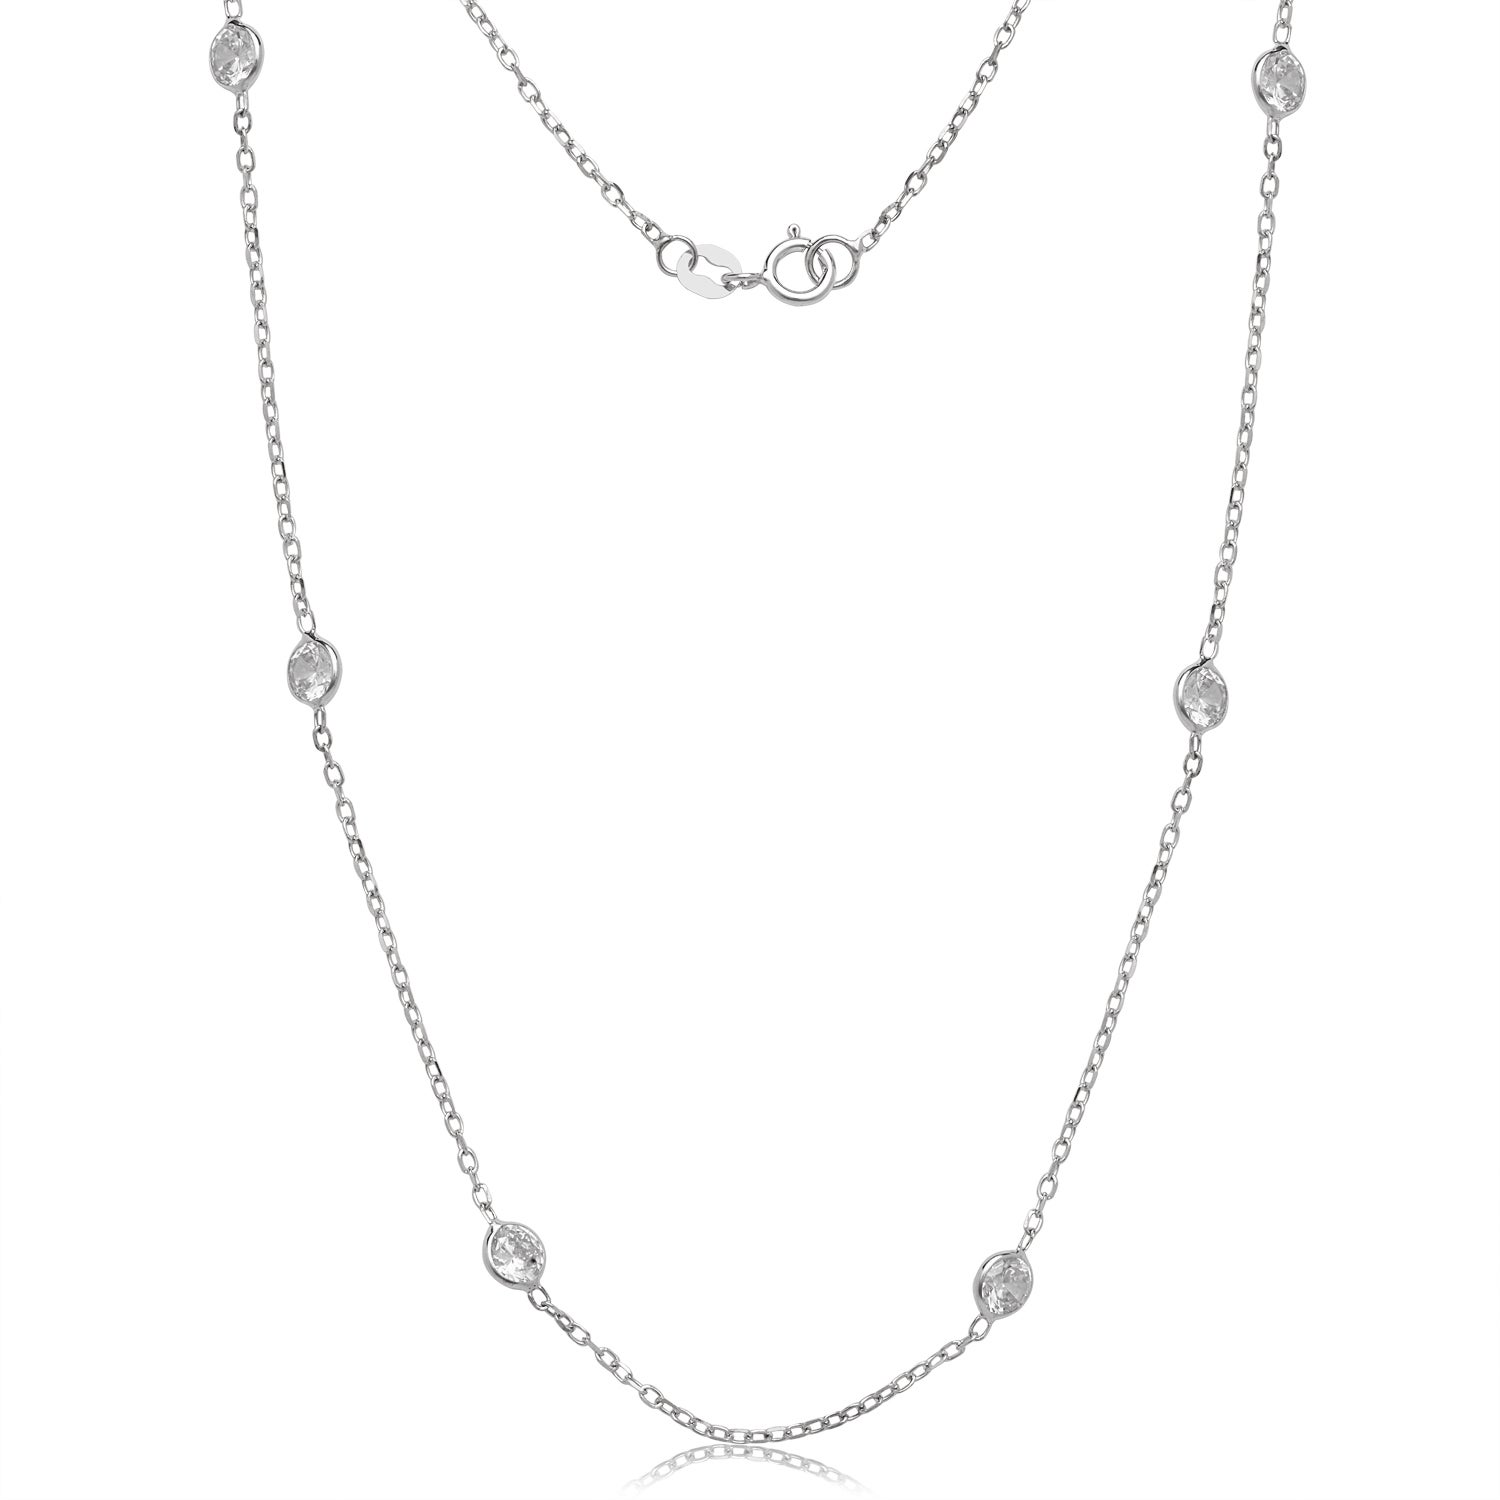 double co cubic in sterling and pendant one rhodium plated with fave all silver zirconia products jewelry halo necklace